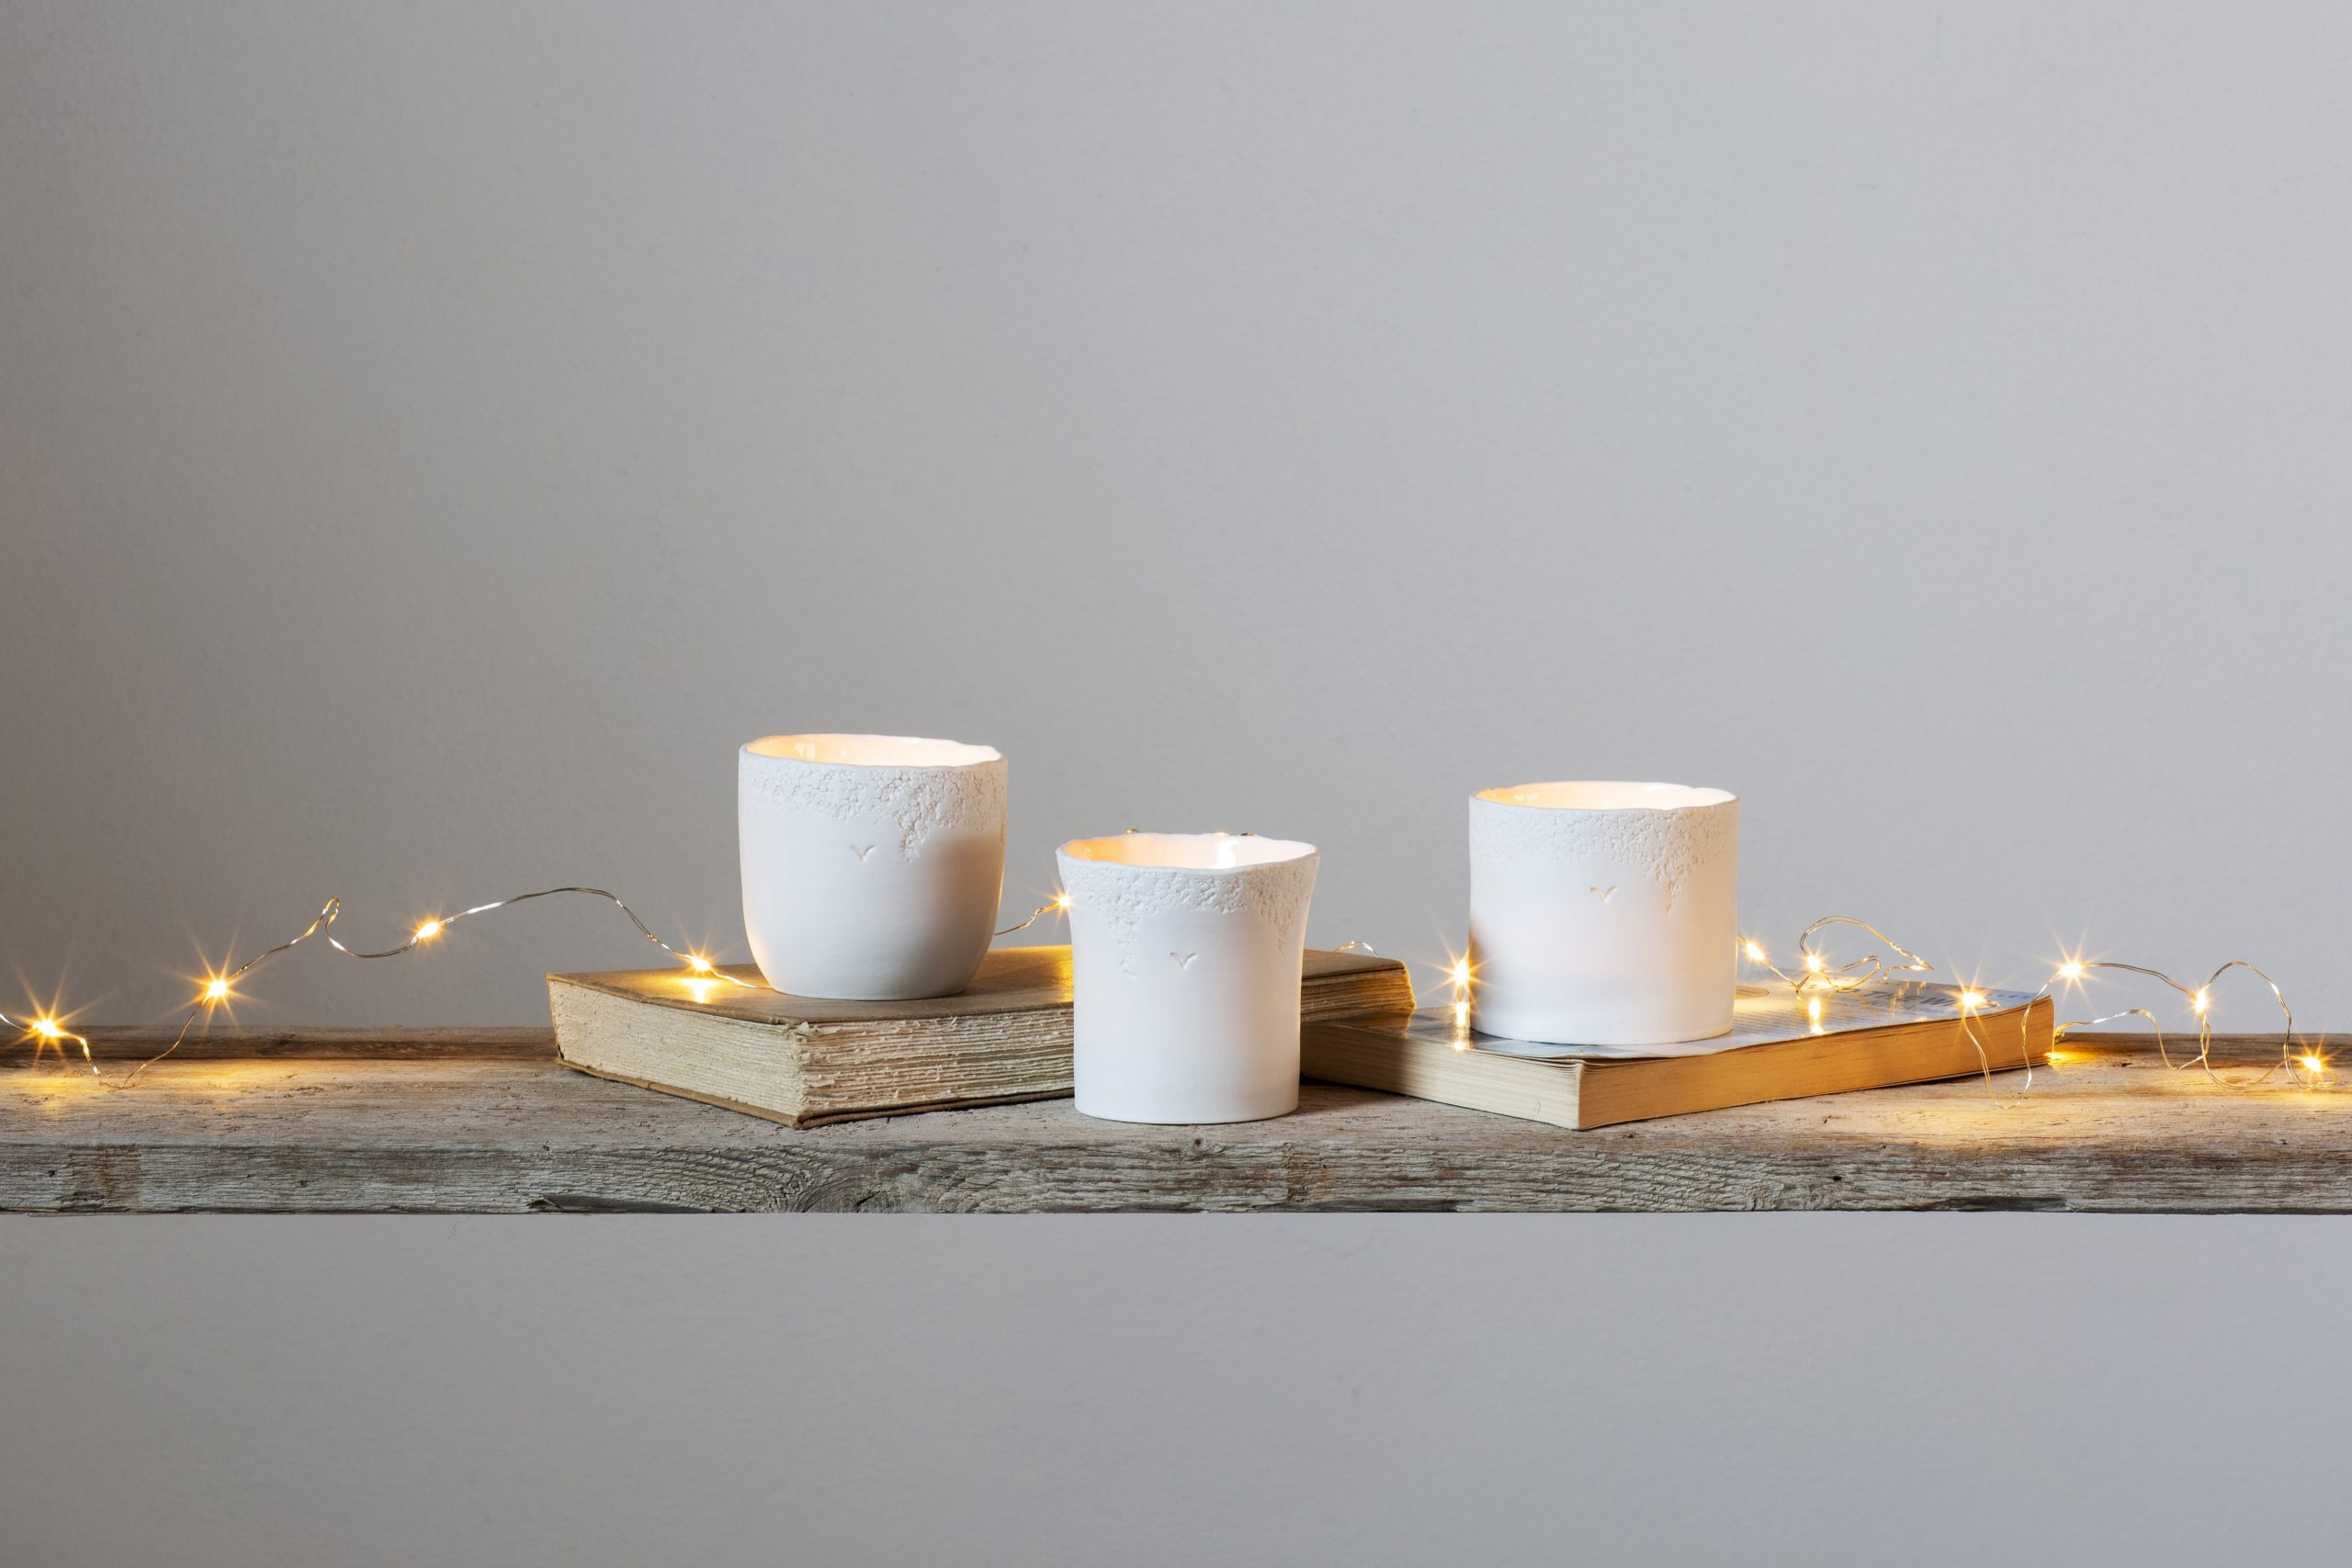 three white textured porcelain candle holders suspended on a shelf with books and lights - handmade - Federica Ramacciotti